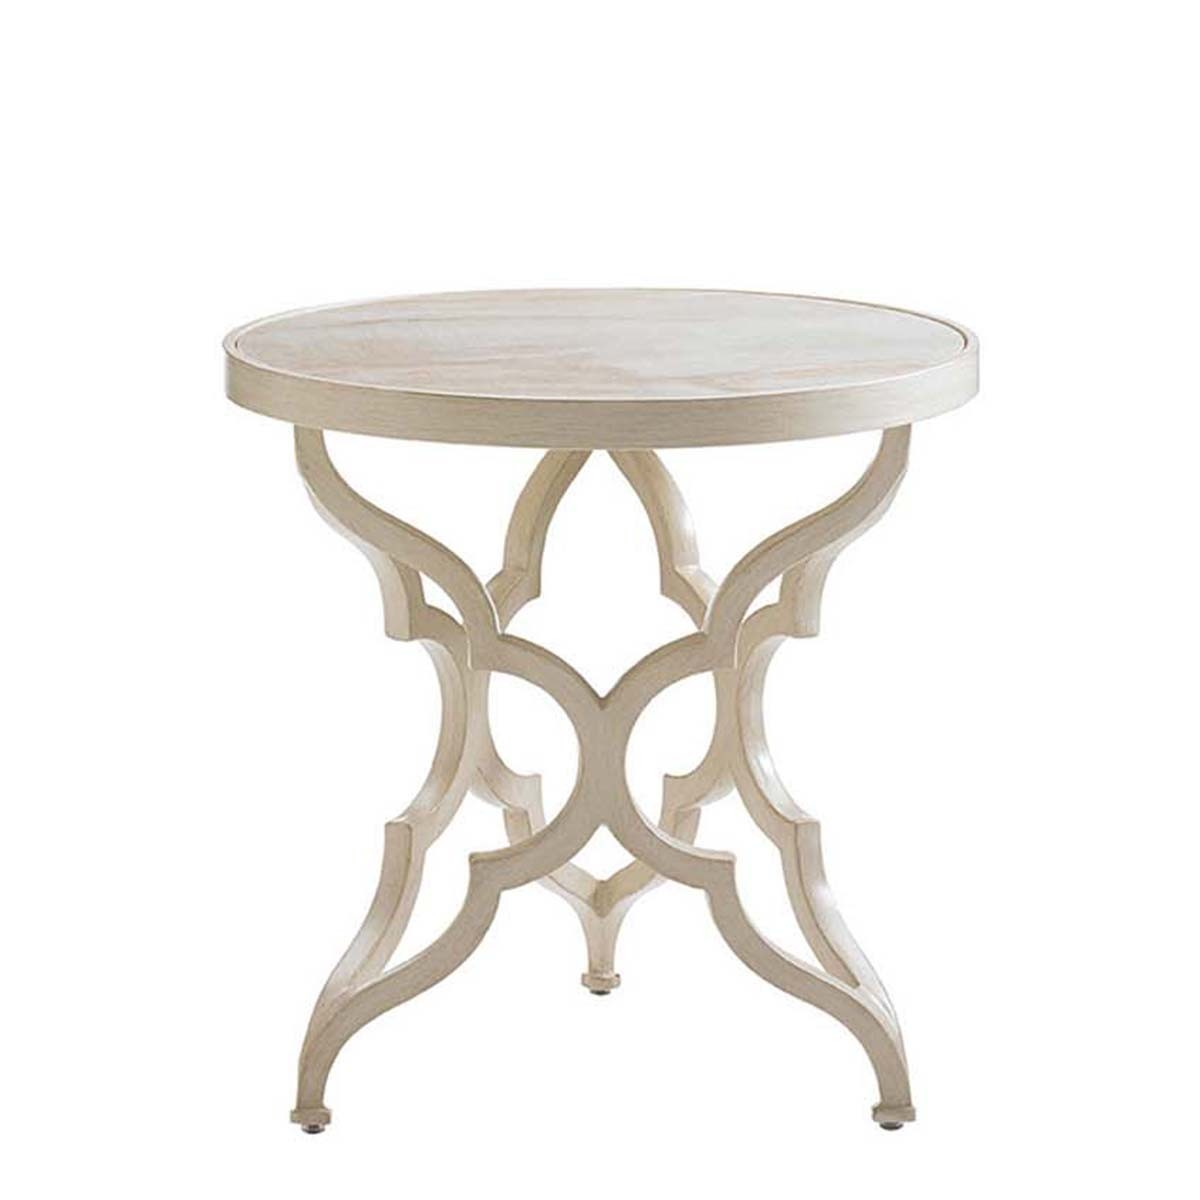 garden accent table with porcelain top tommy bahama outdoor tbo wood pier one clearance tiffany style lighting cream colored tables shade and light mosaic patio furniture mirrored